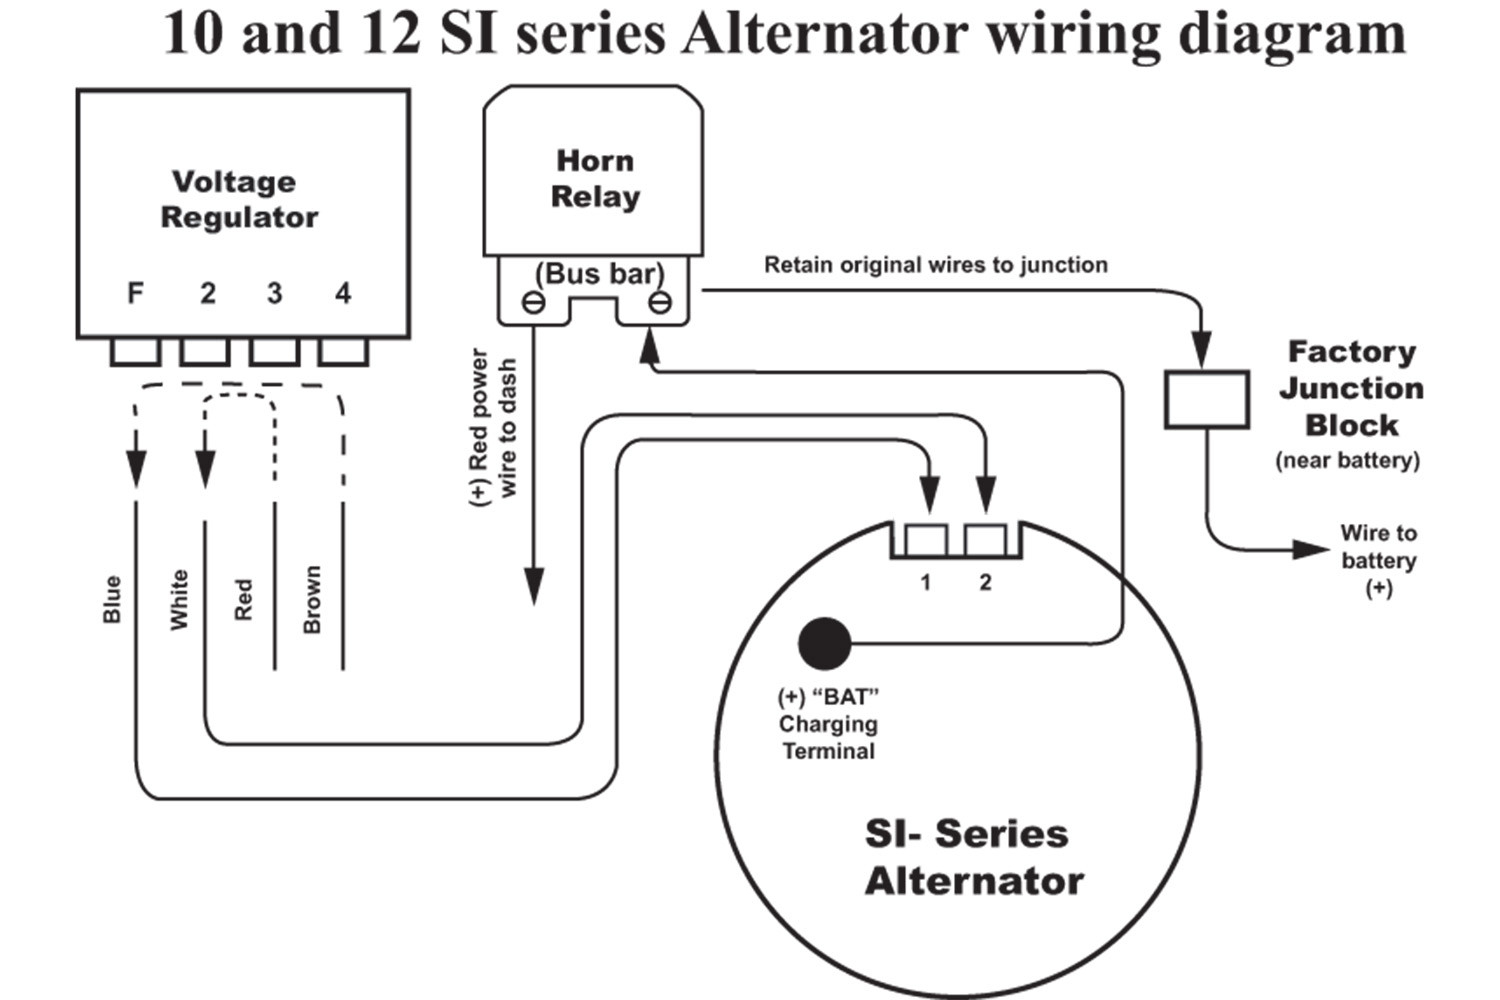 Alternator Wiring Diagram D - Murray Lawn Mower Schematics -  dvi-d.yenpancane.jeanjaures37.fr | Wps Alternator Wiring Diagram |  | Wiring Diagram Resource